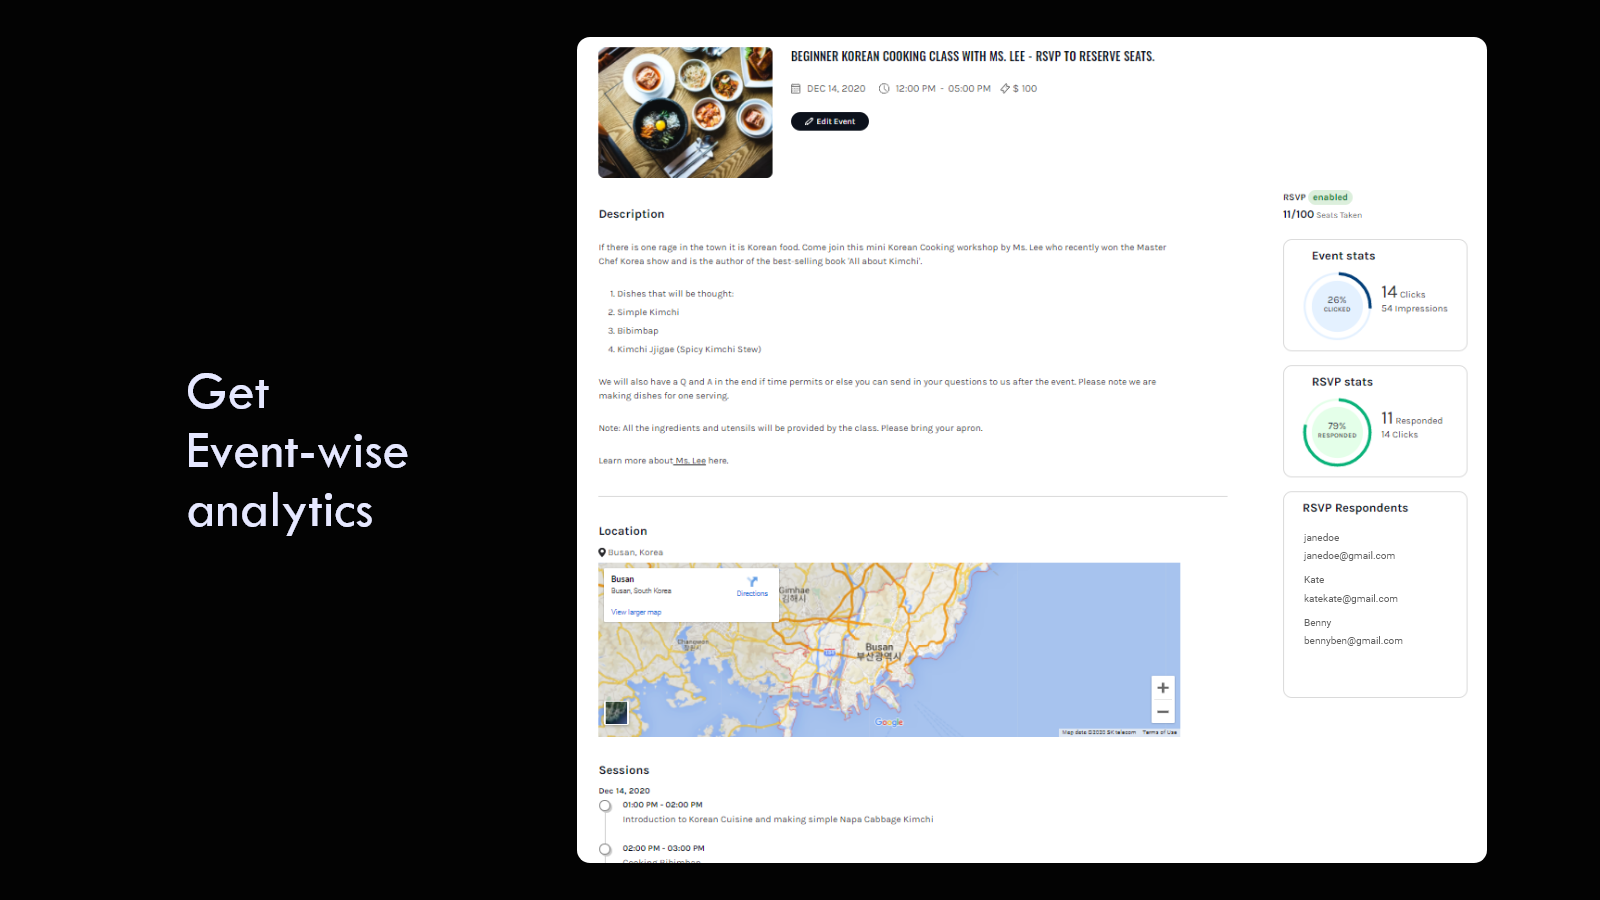 Get event-wise statistics like visitors and RSVP respondent rate